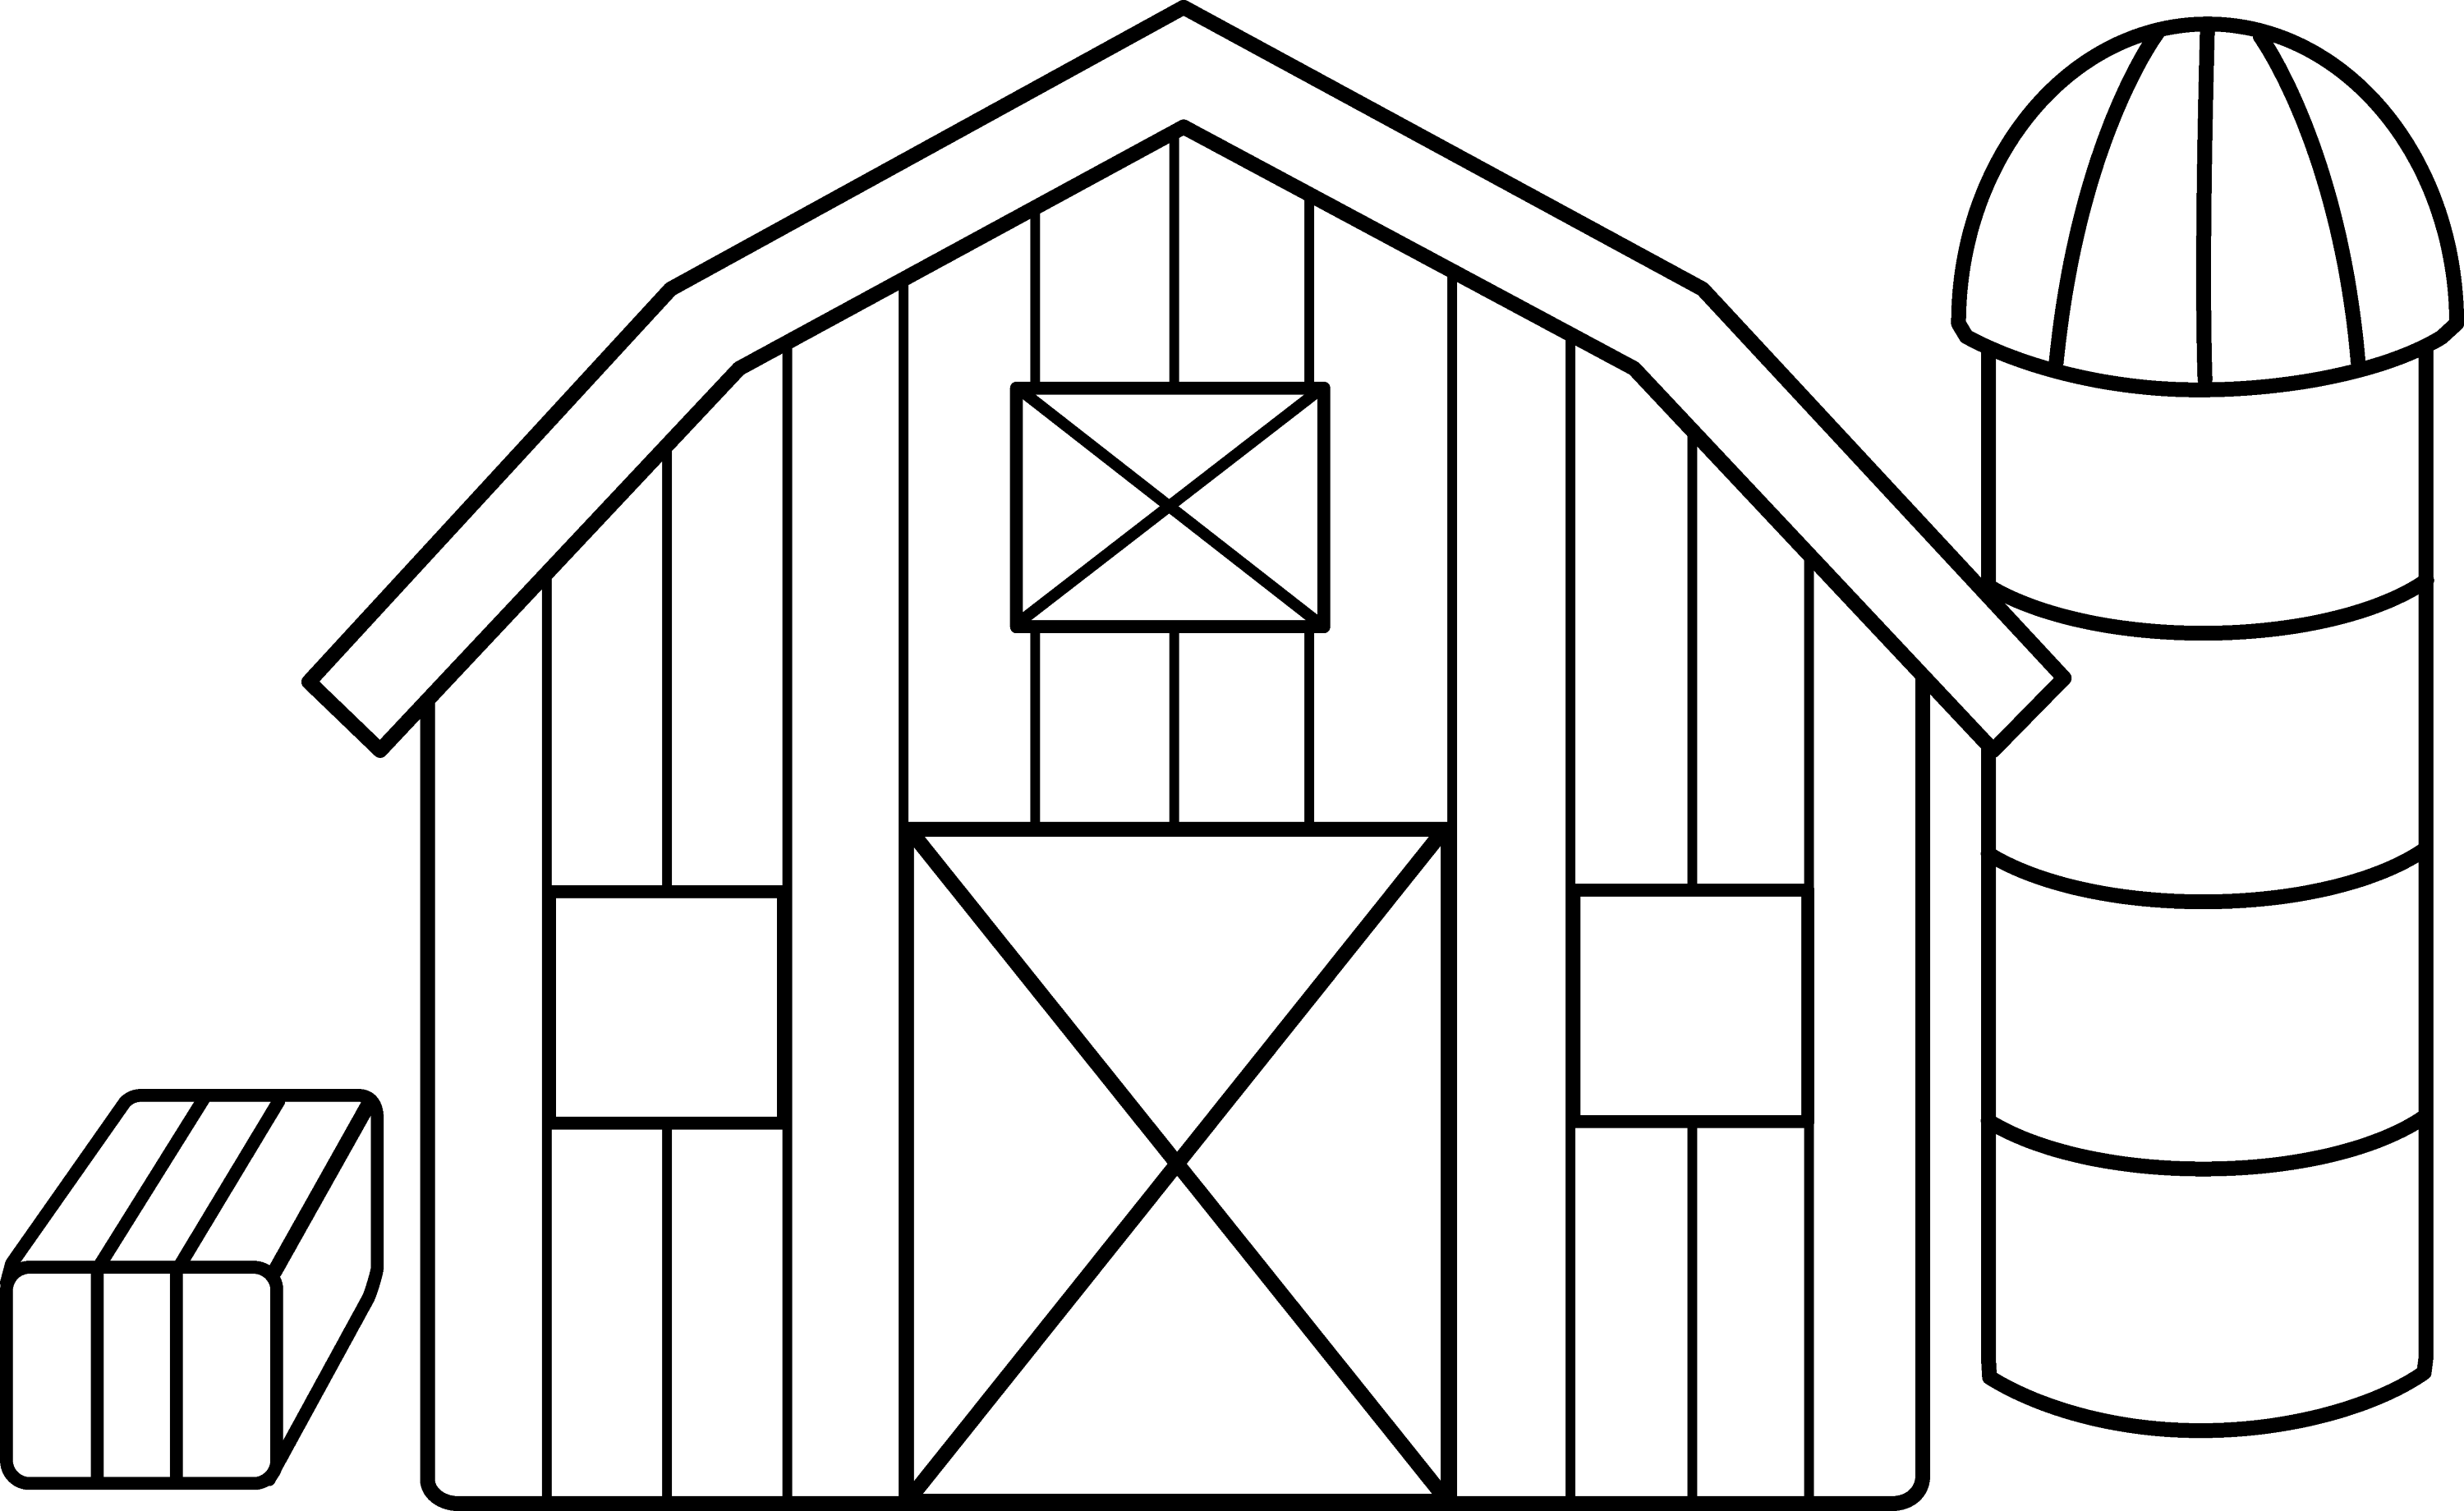 This is a photo of Ridiculous Barn Coloring Sheet